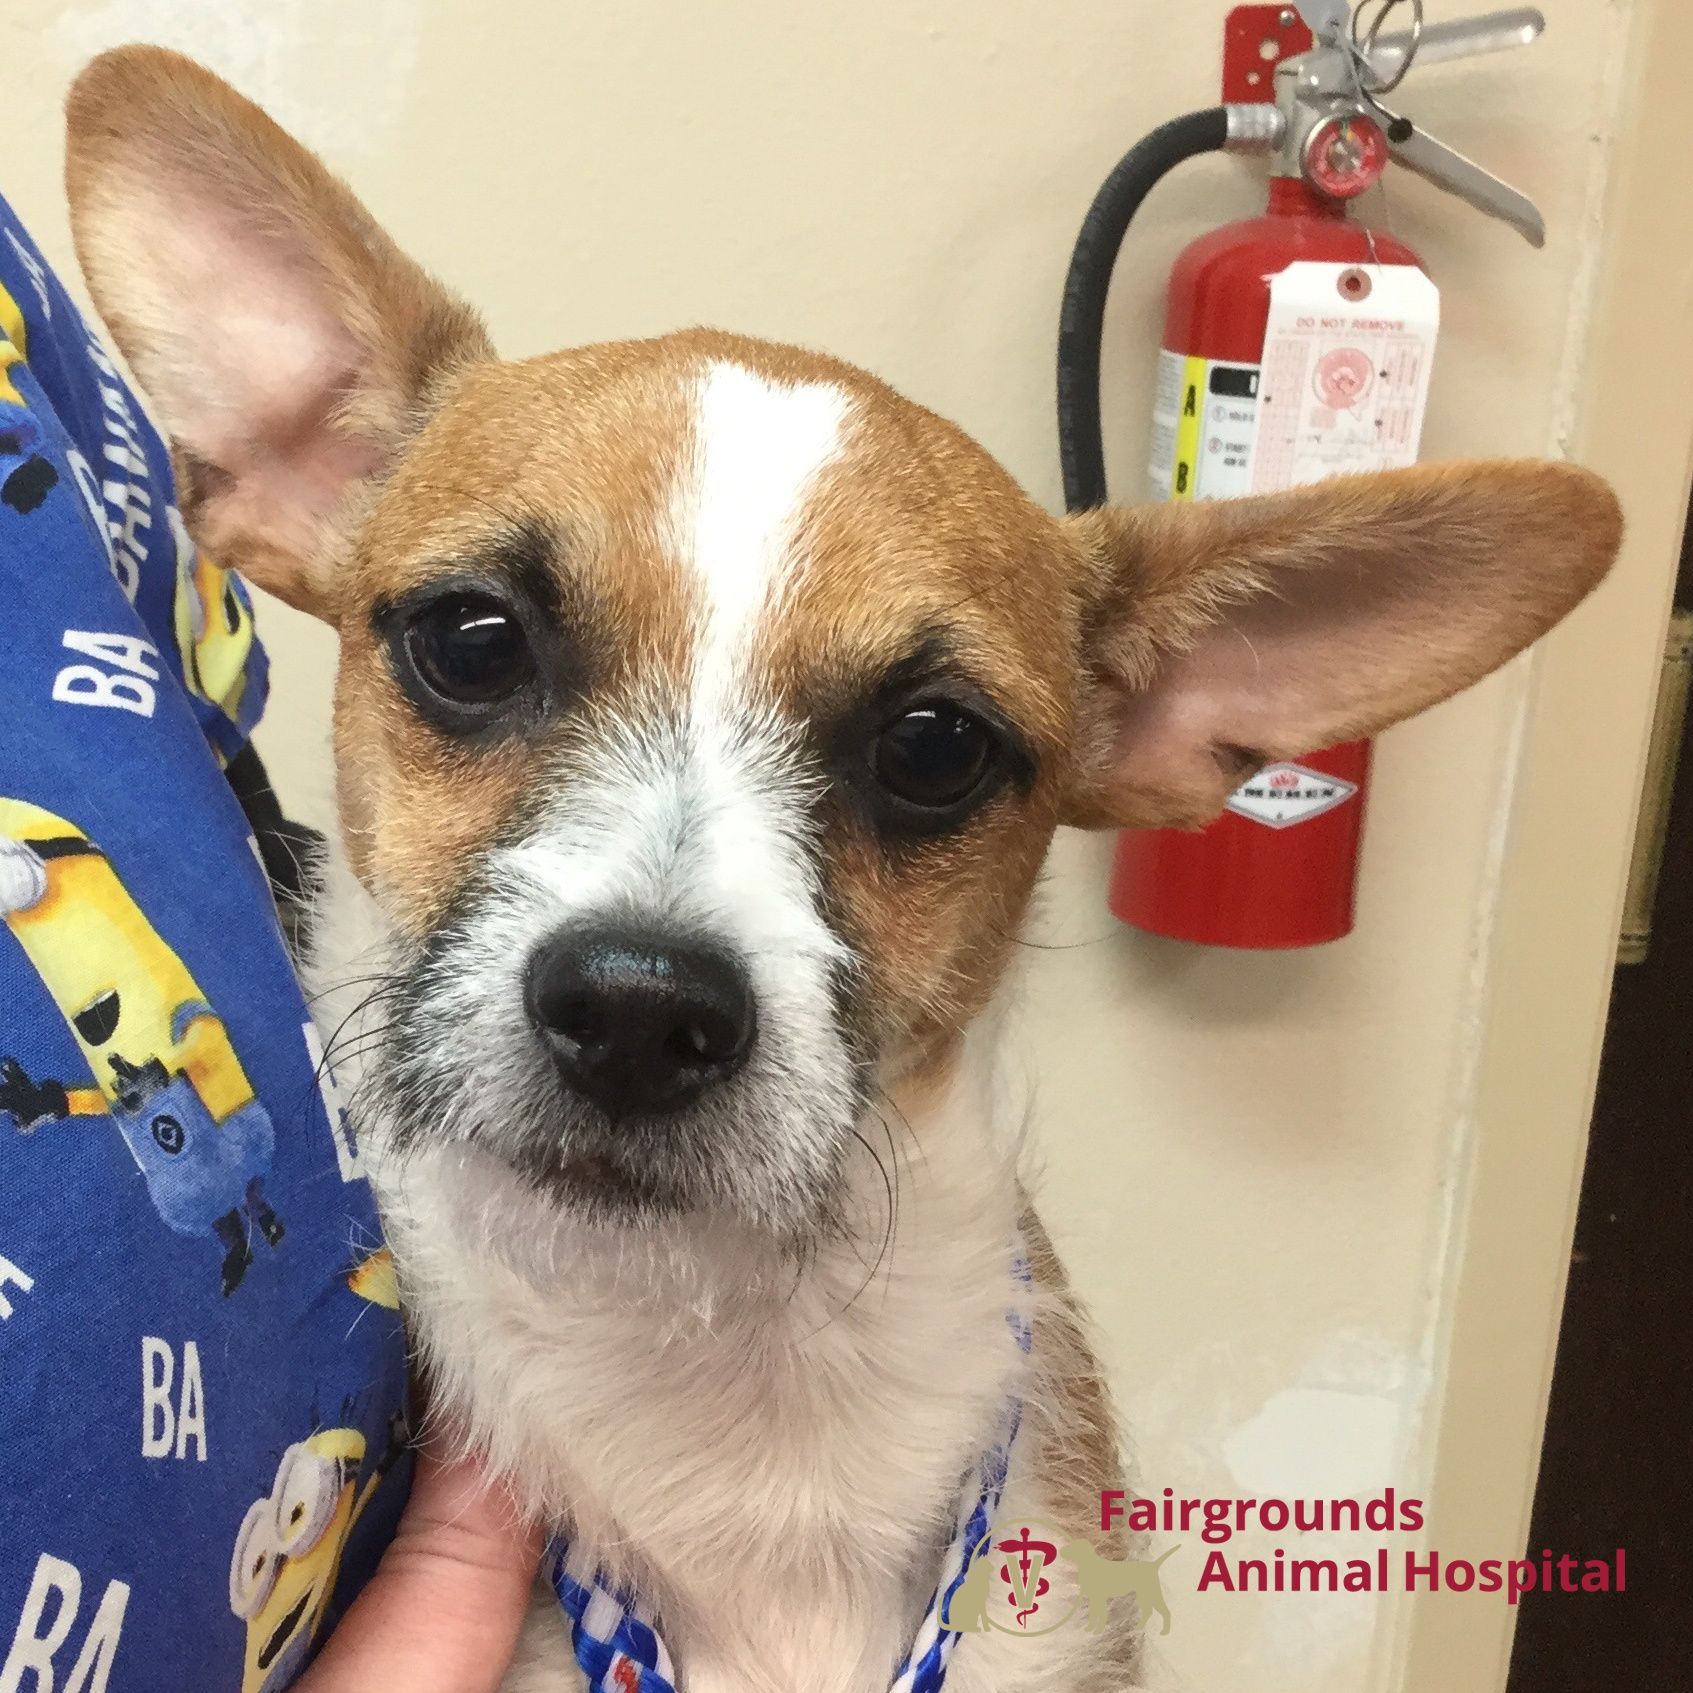 Oingo was seen at Fairgrounds Animal Hospital for a dental